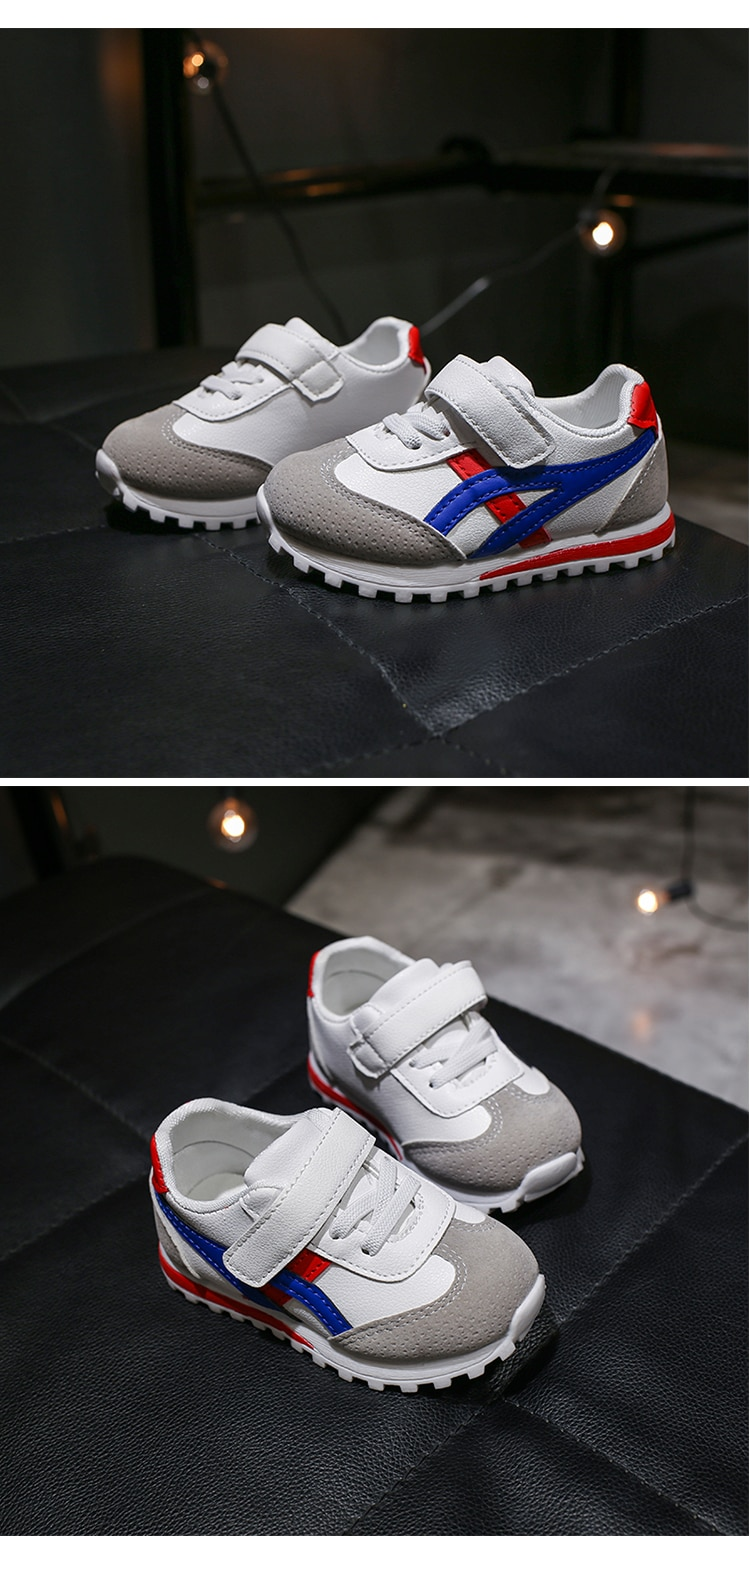 SKOEX Children Sport Shoes Girls Boys Baby Shoes Soft Fashion Running Sneakers for Kids Toddler Casual Trainers Tenis Infantil